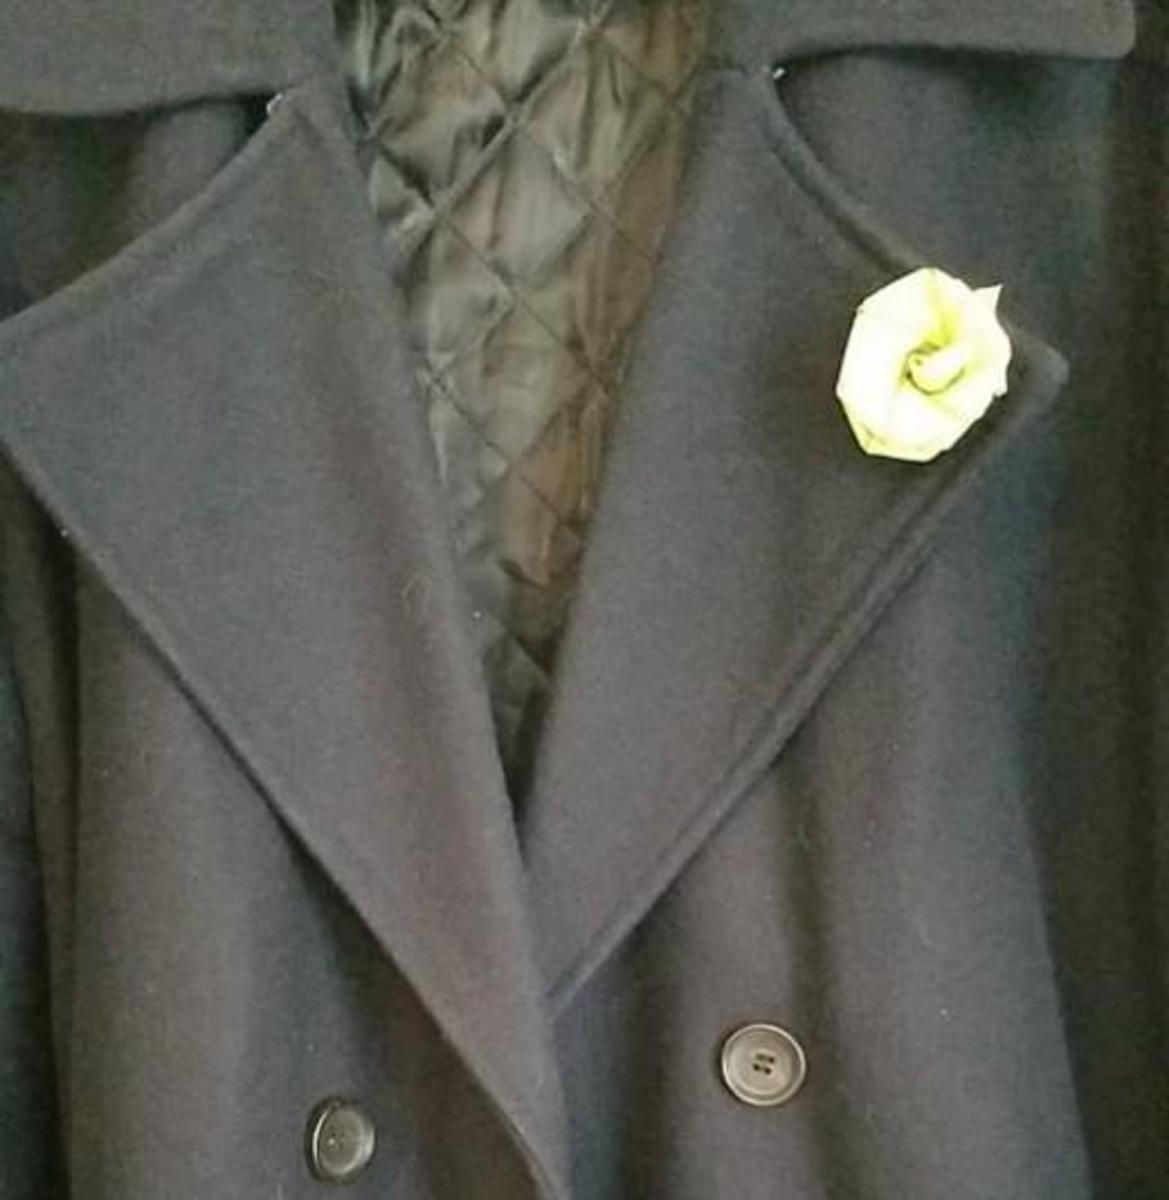 Make a small rose and push through a button hole in your jacket for a lovely palm rossette